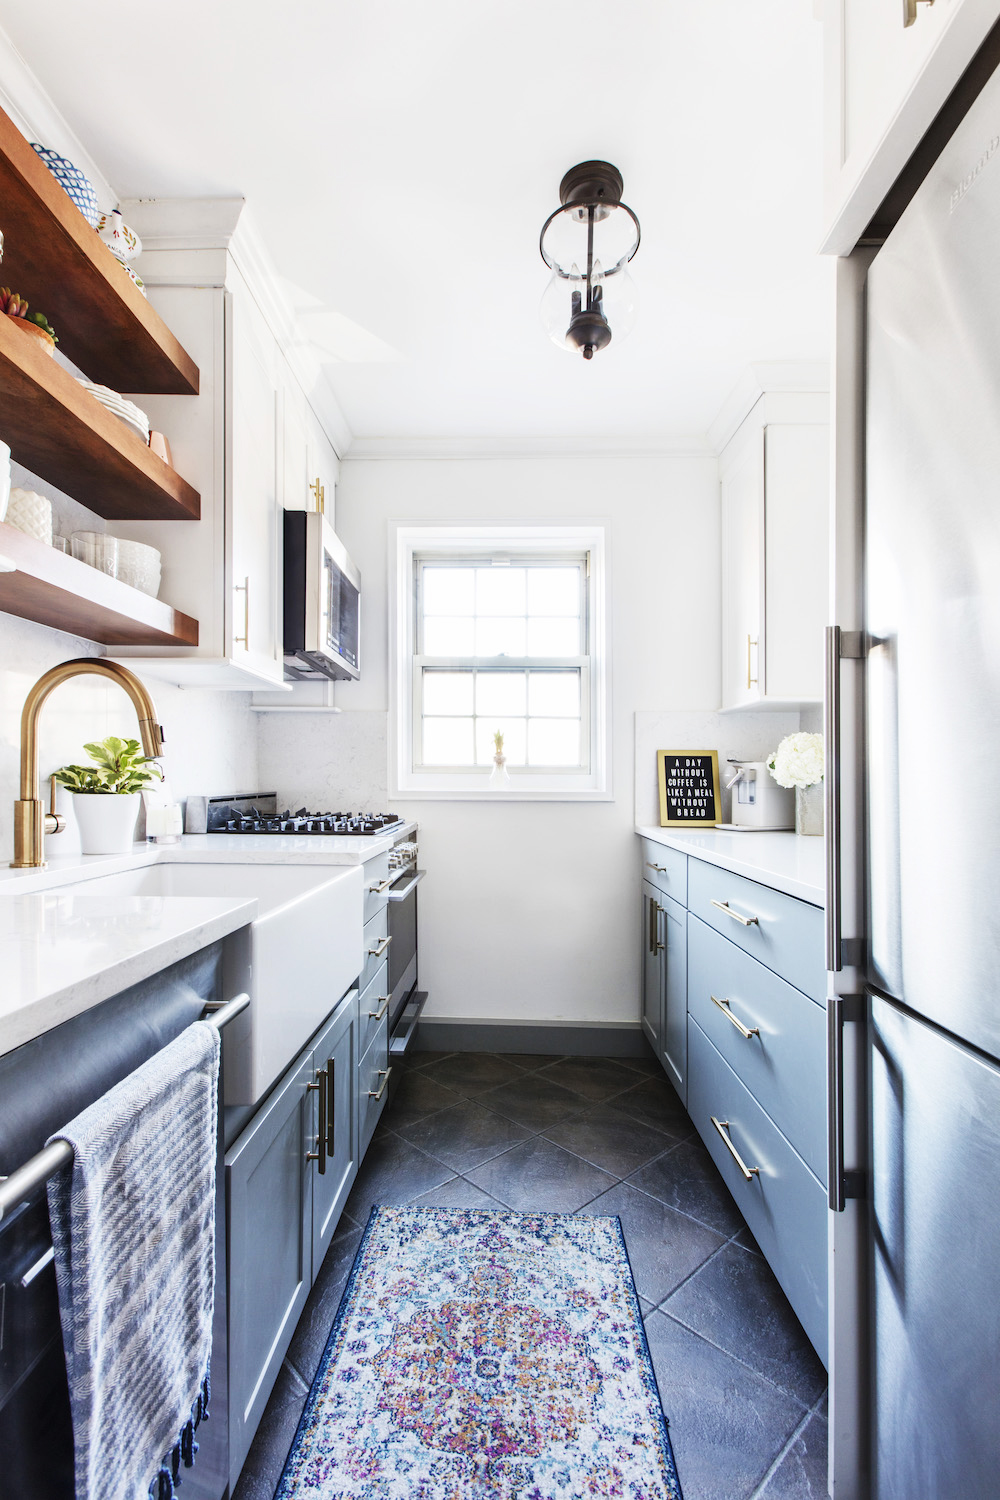 small apartment galley kitchen with two toned cabinets. blue cabinets are on bottom with white shaker upper cabinets. white countertops and white walls make the space feel bright and natural